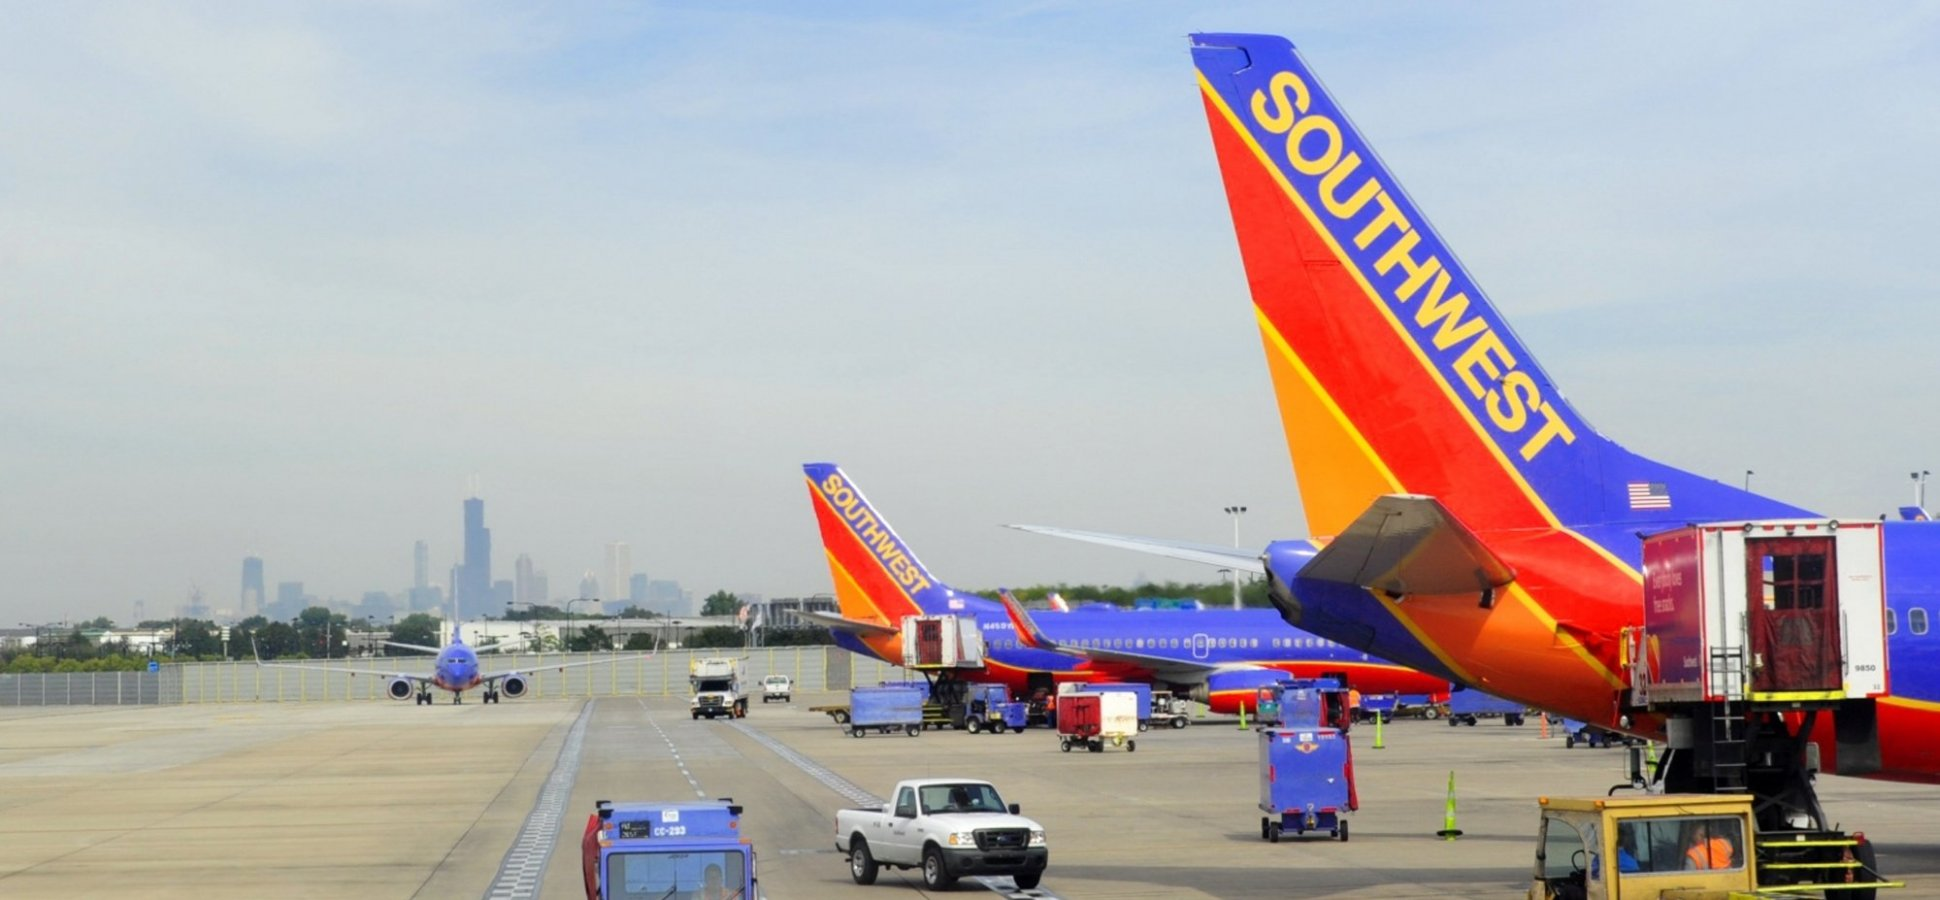 With 5 Short Words, the CEO of Southwest Just Made an Announcement No Other Airline Will Even Try